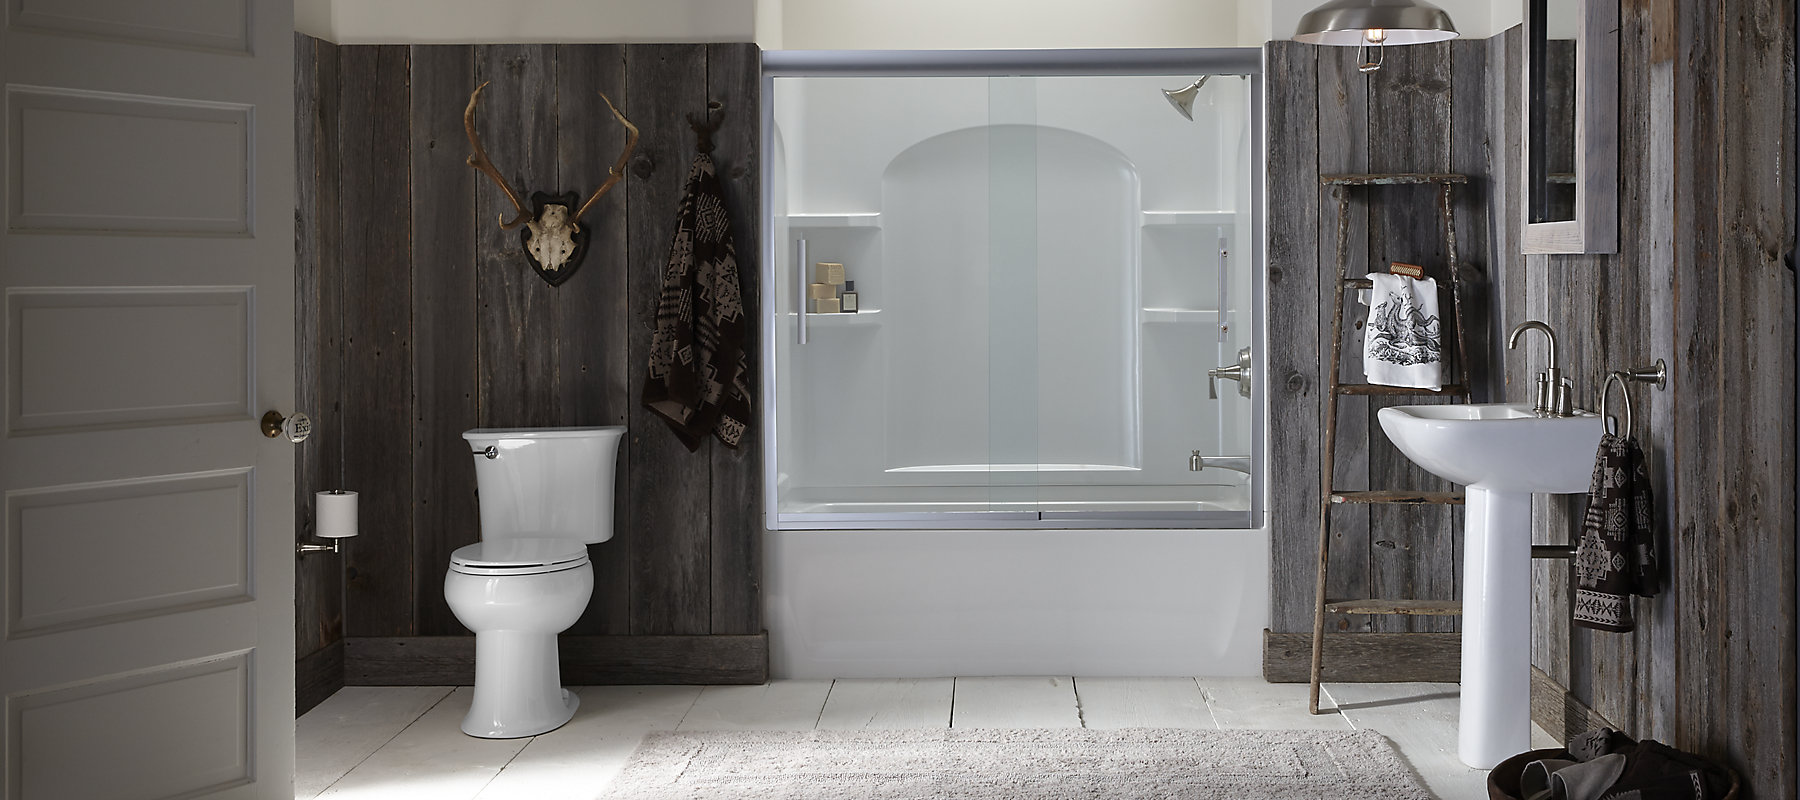 Toilets | Bathroom Sinks | Care and Cleaning | Sterling Plumbing